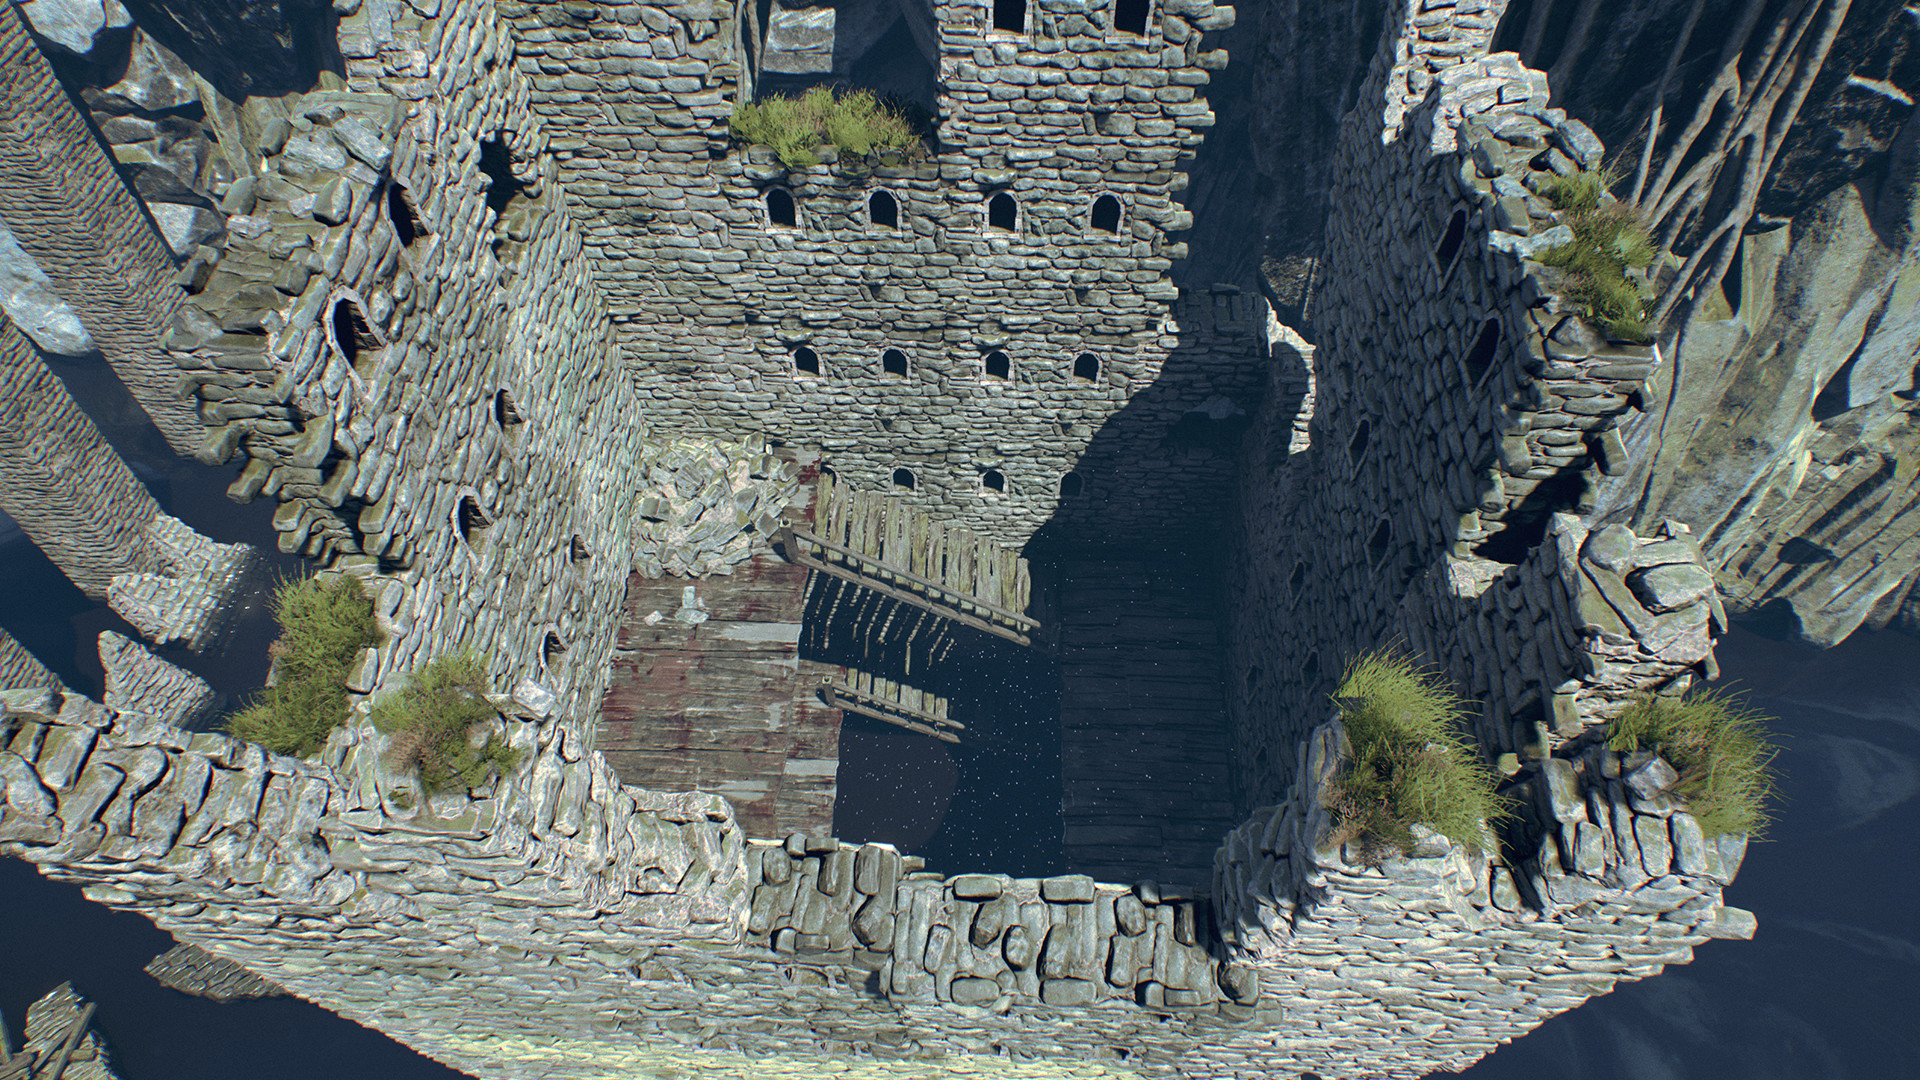 Sharur t clifftowerruins screenshot 02